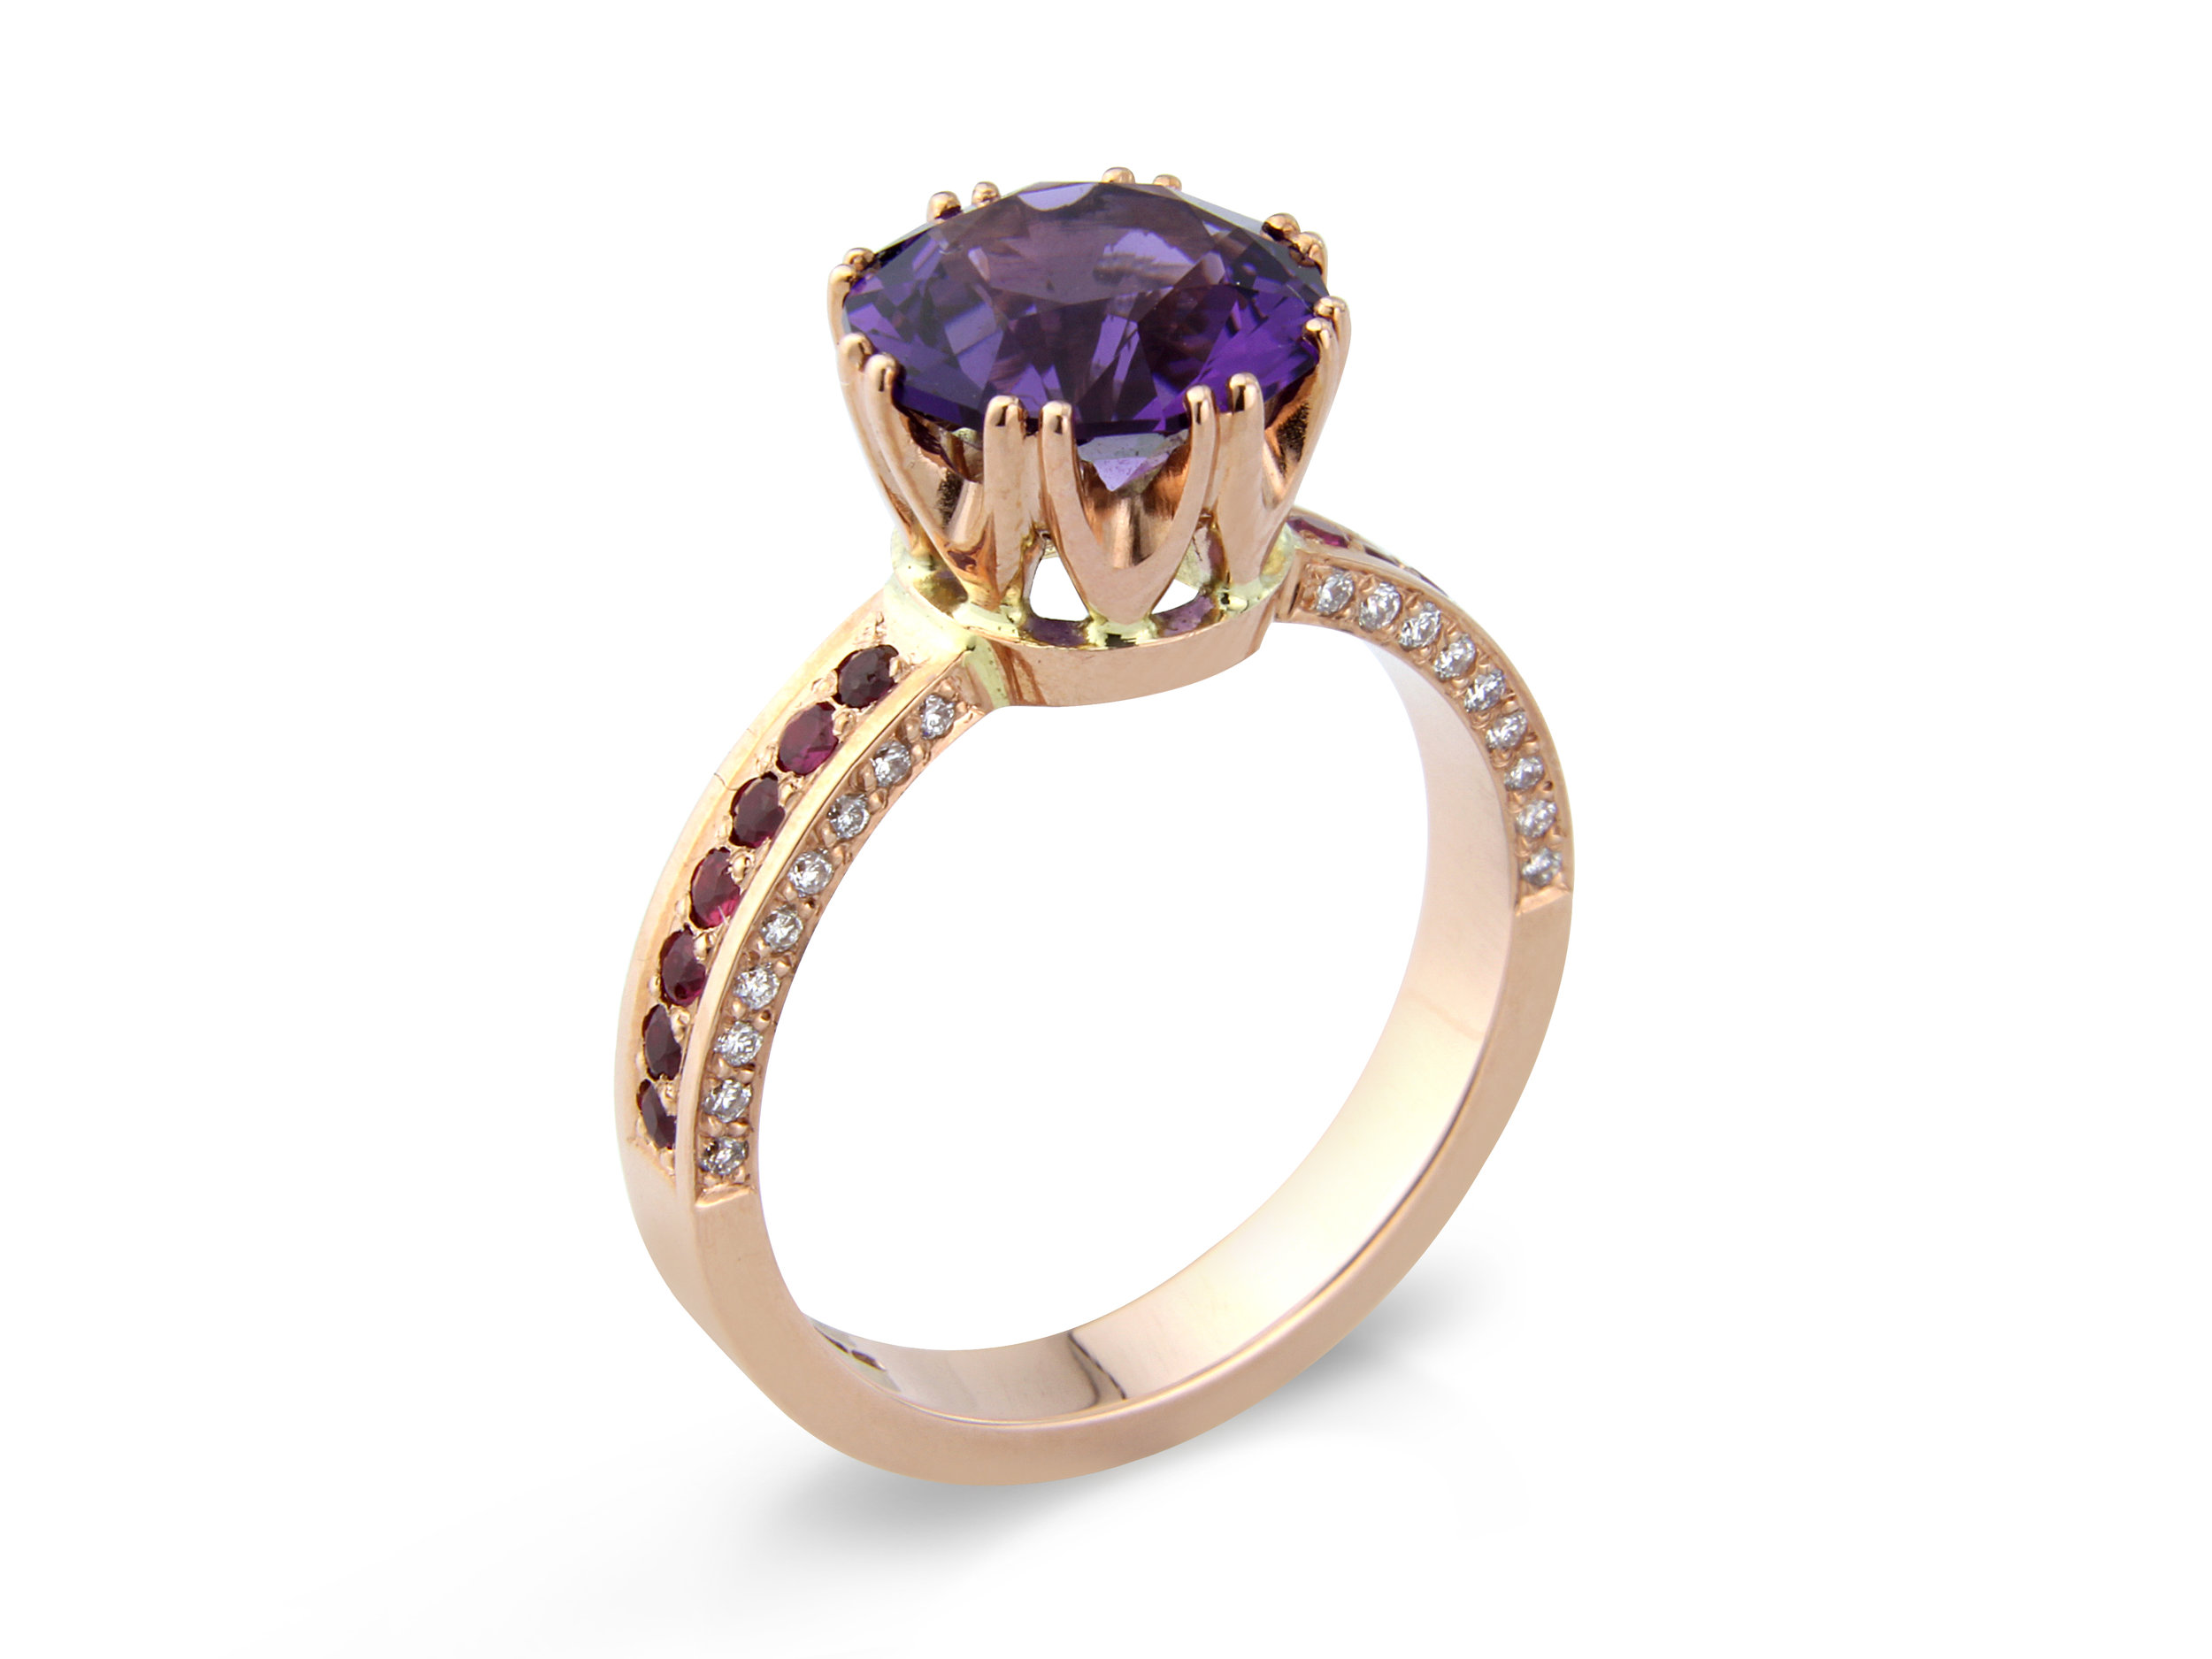 Top quality Amethyst set with diamonds and rubies in 9ct rose gold designed and hand made by QVJ.